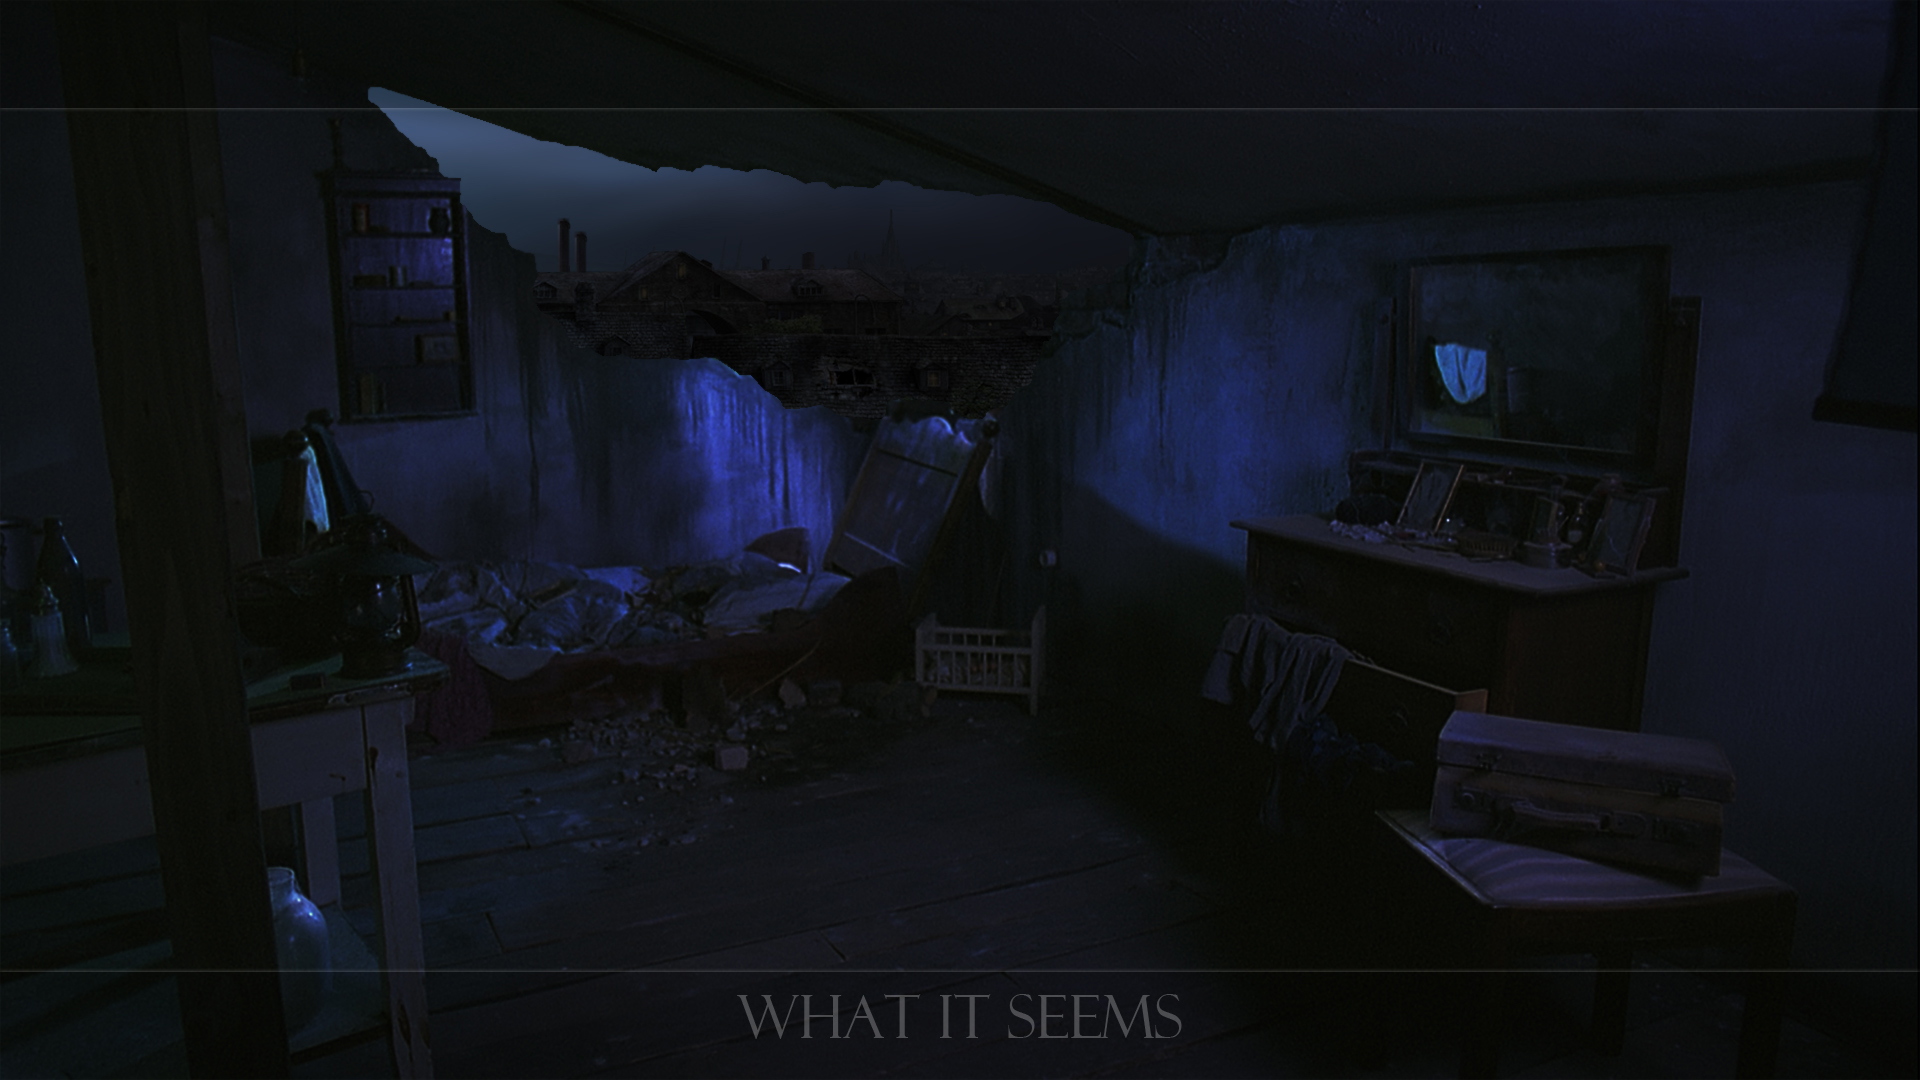 What it seems - matte painting